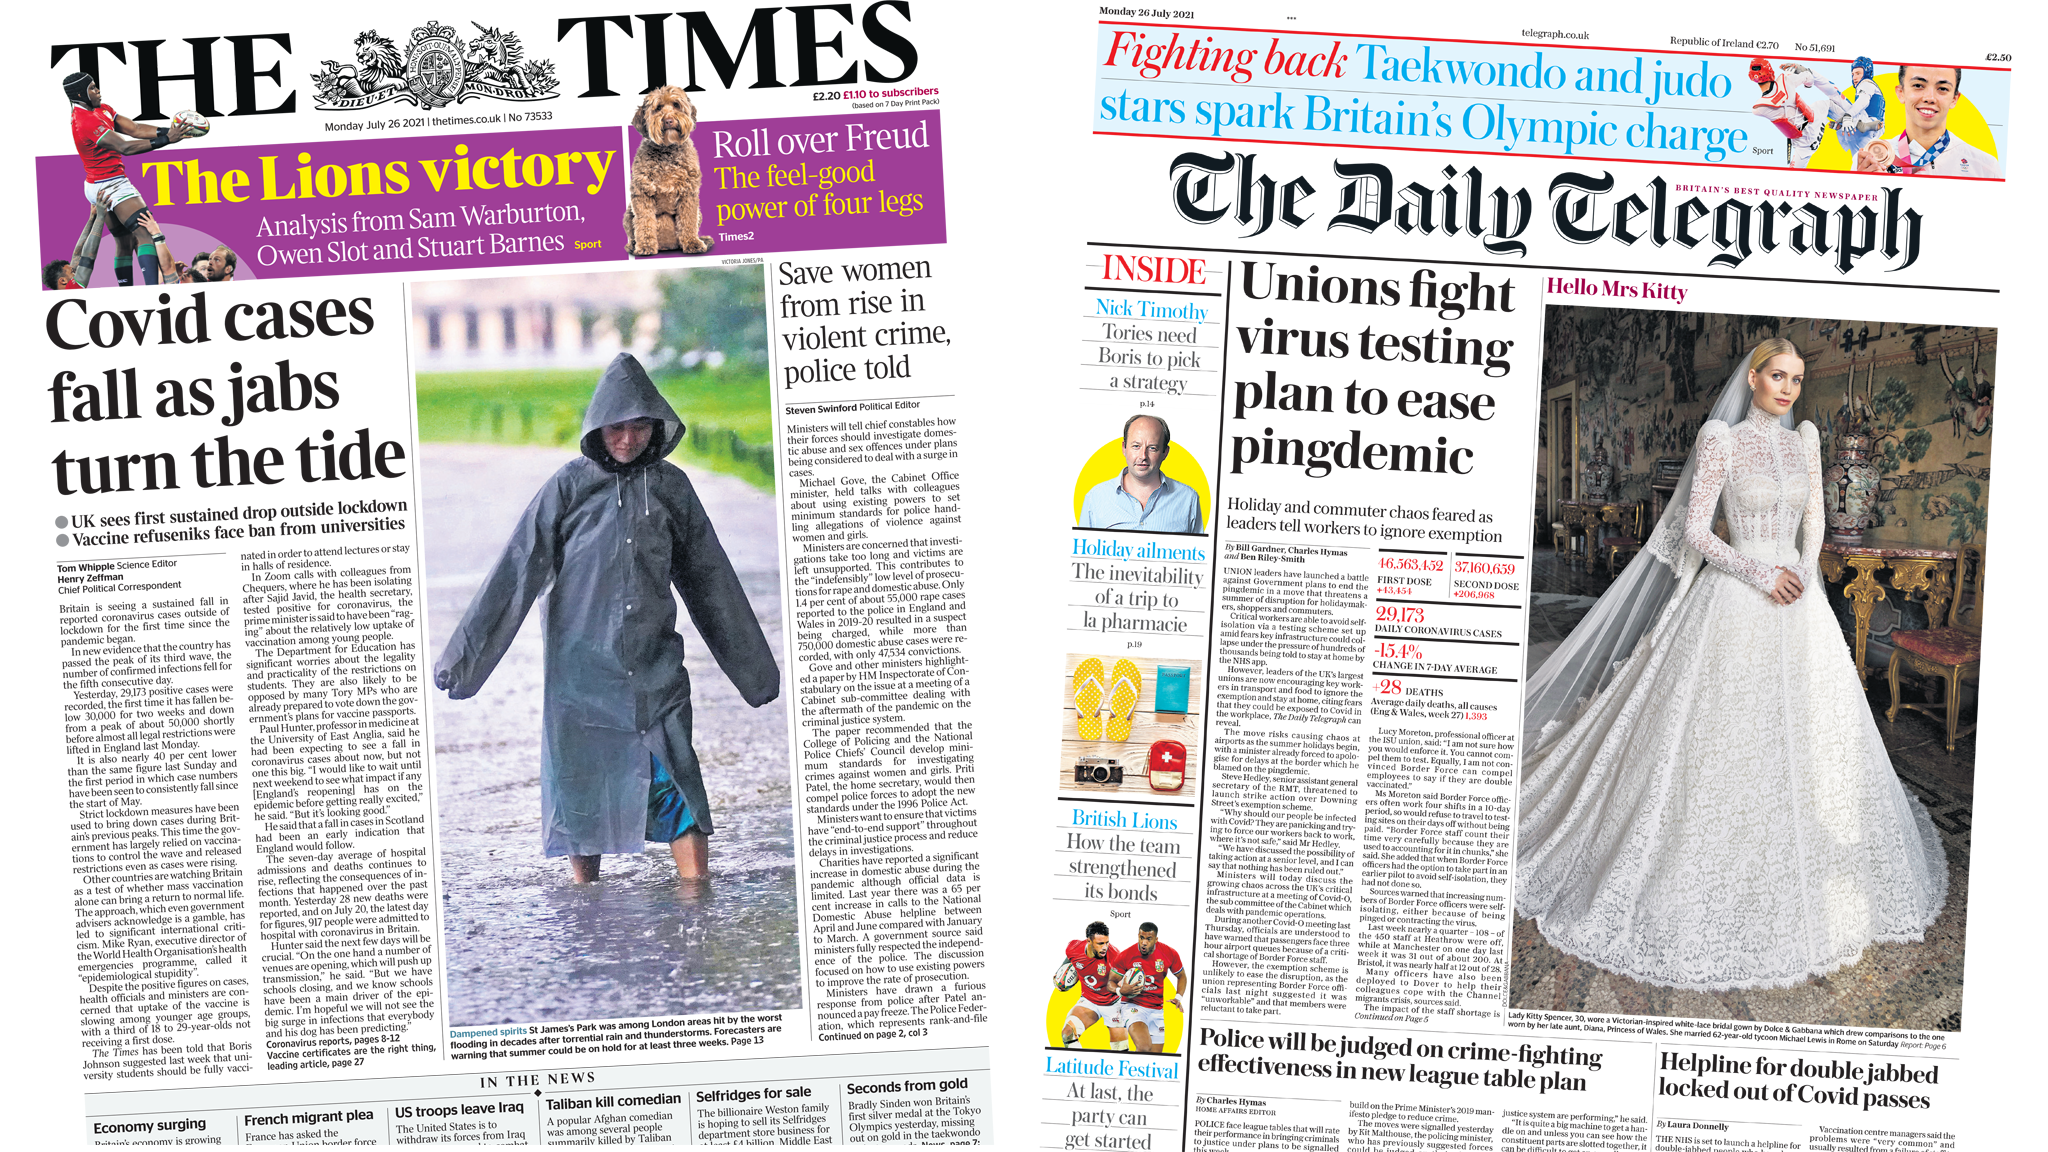 The Times and Daily Telegraph front pages